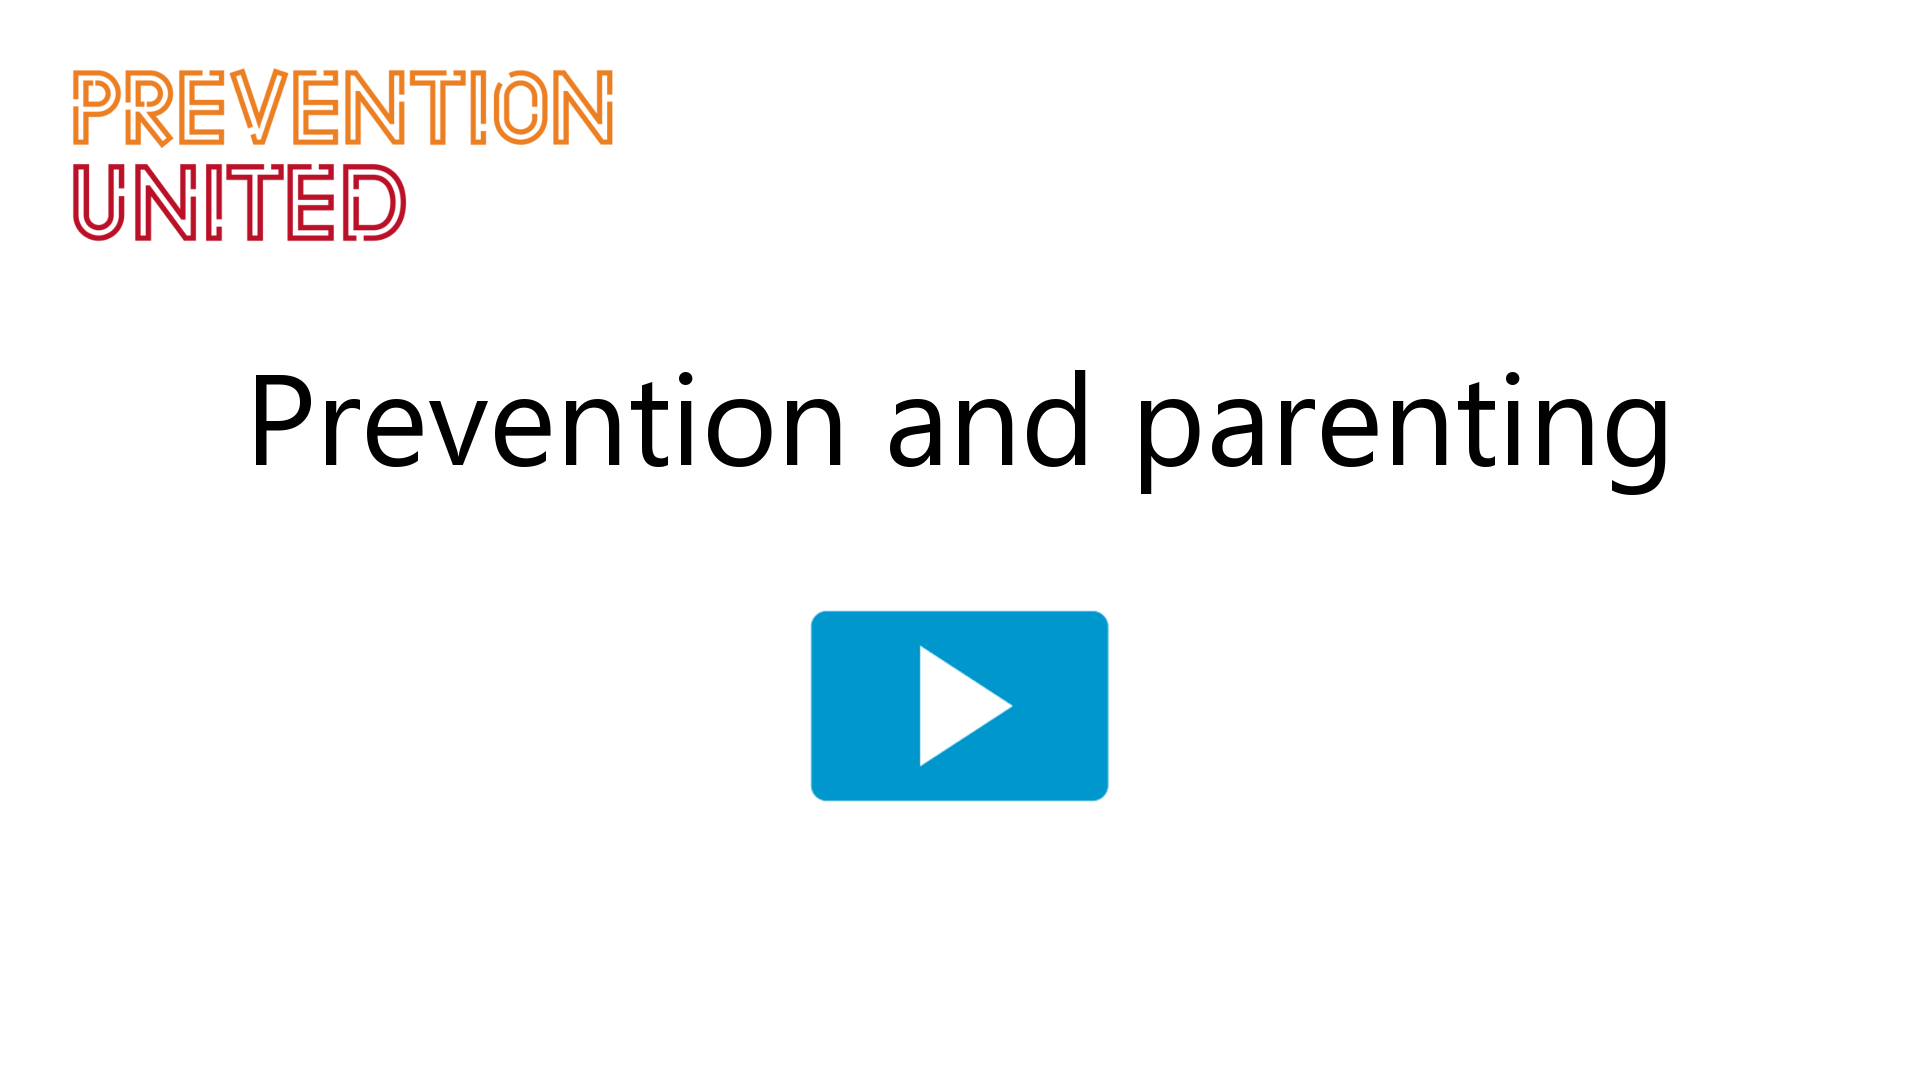 Prevention and parenting